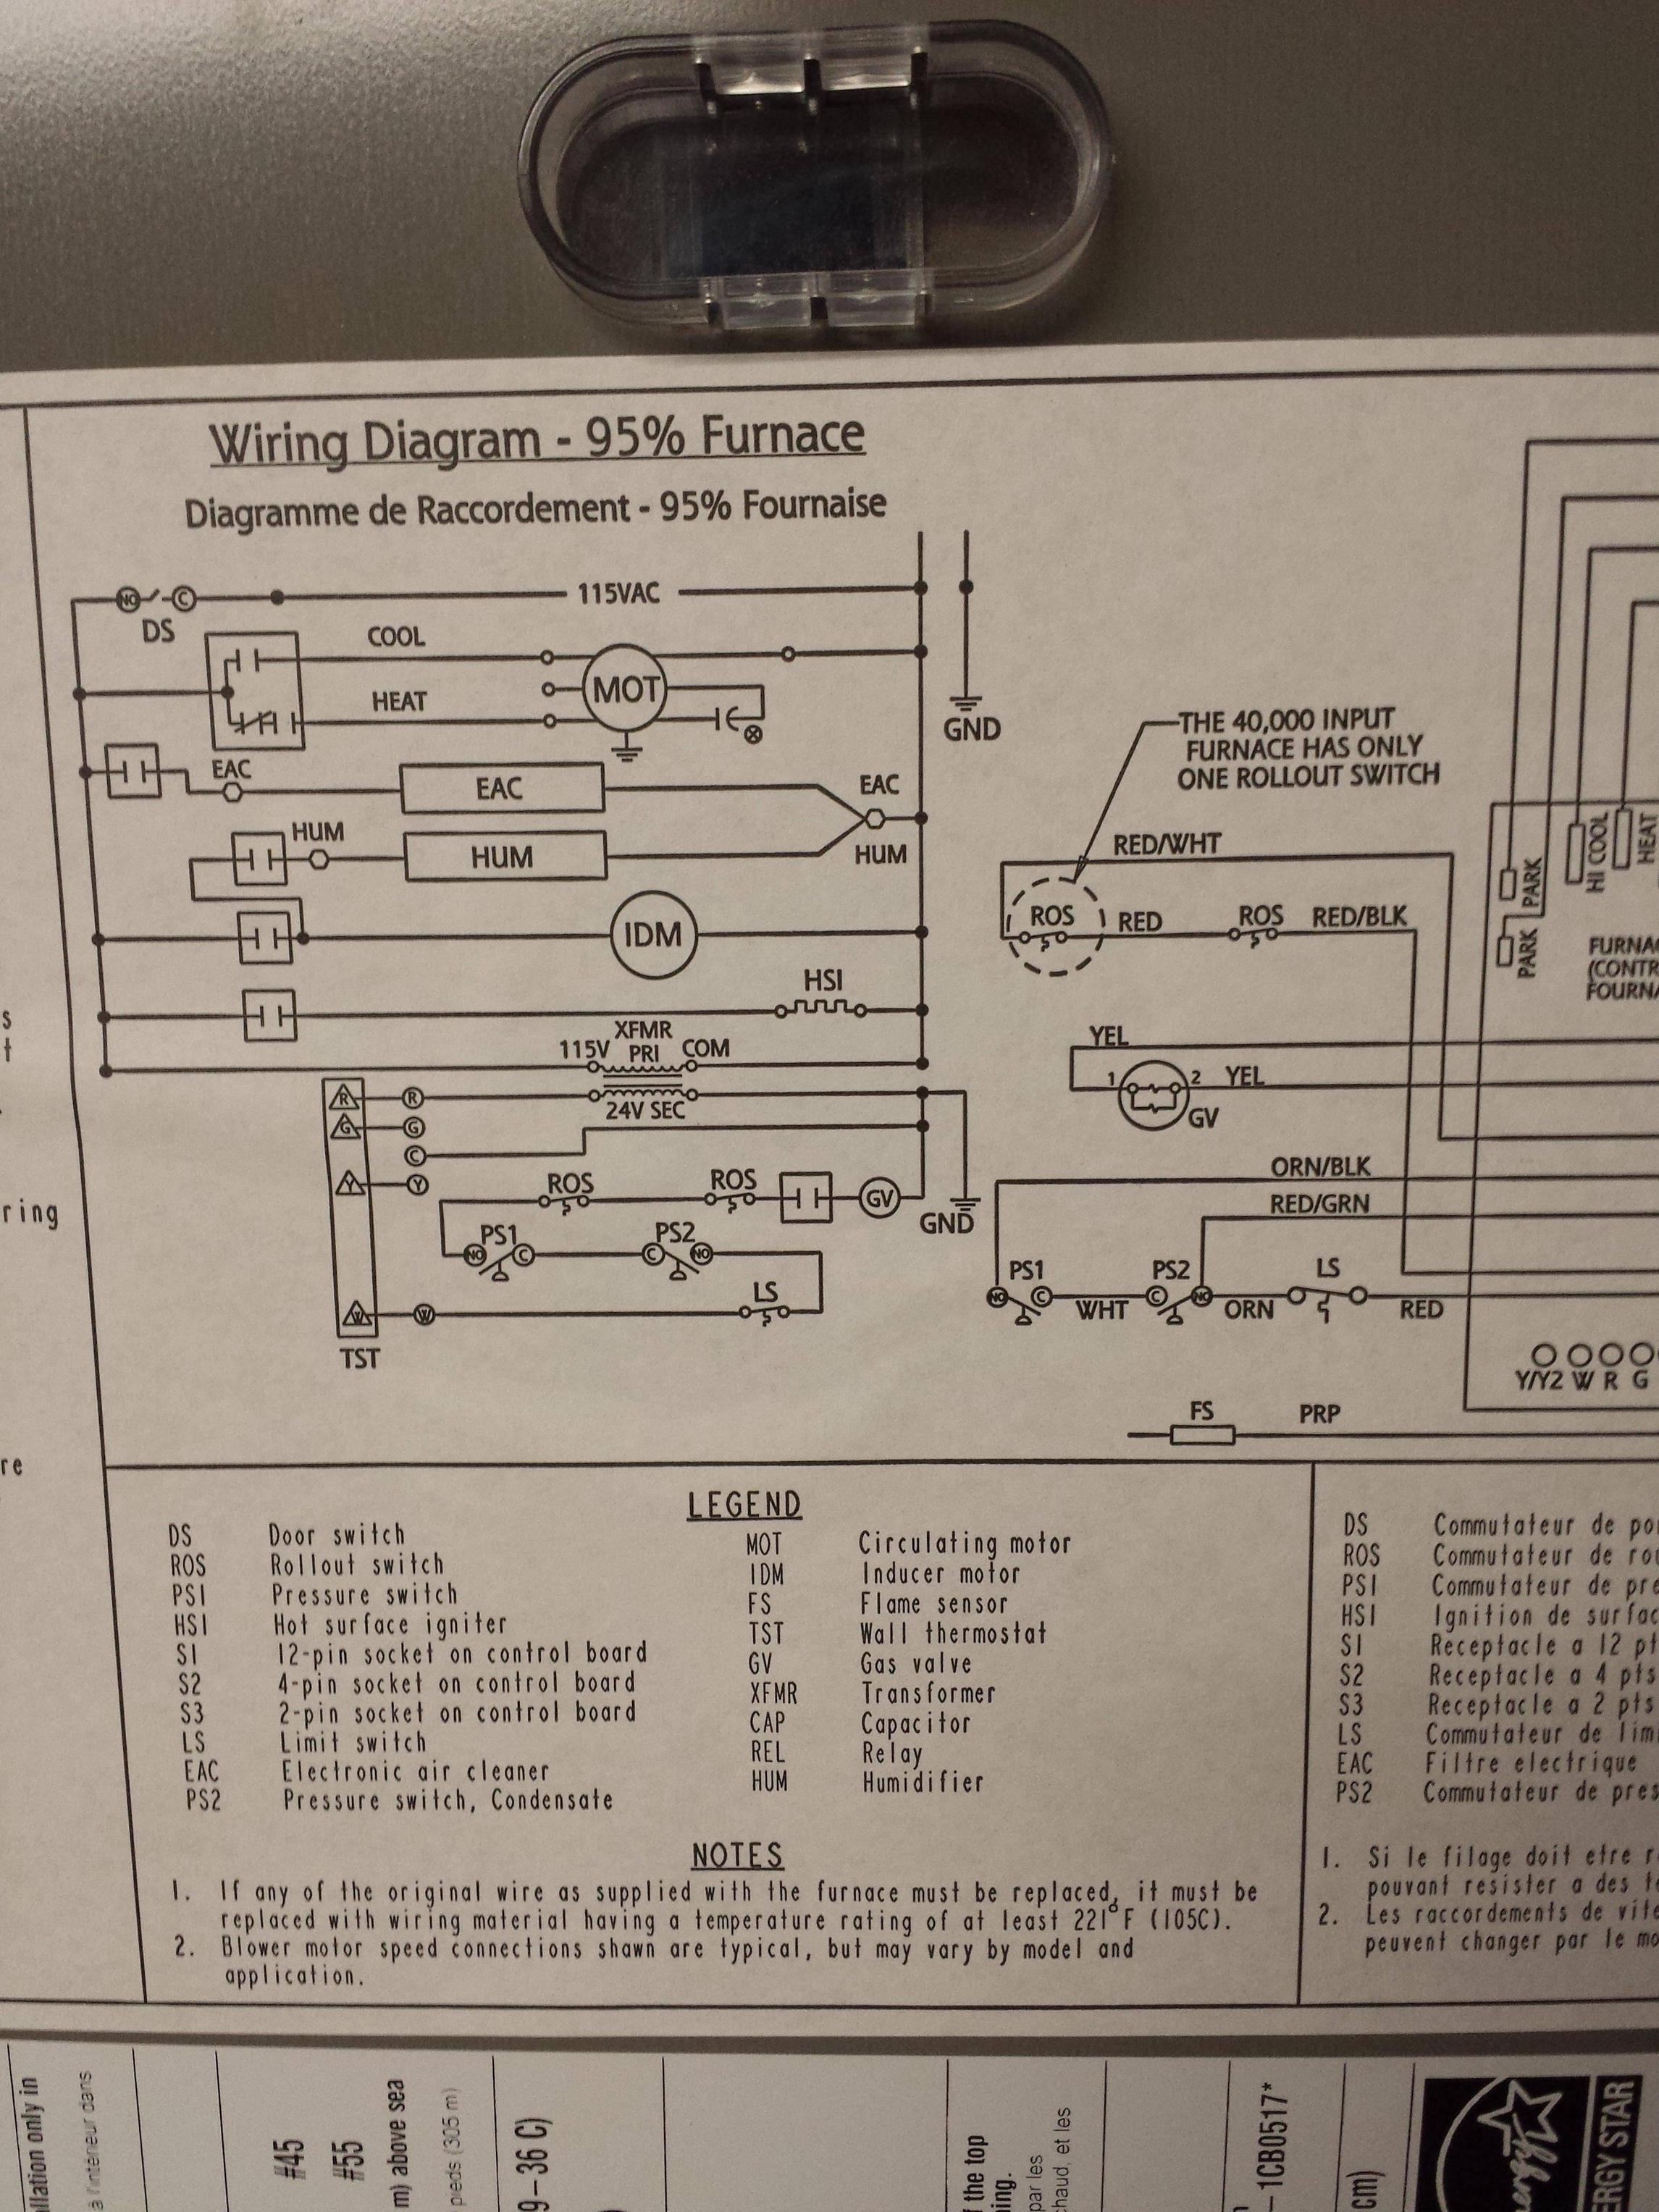 Wiring Diagram Wires Also Lennox Thermostat Wiring Diagram